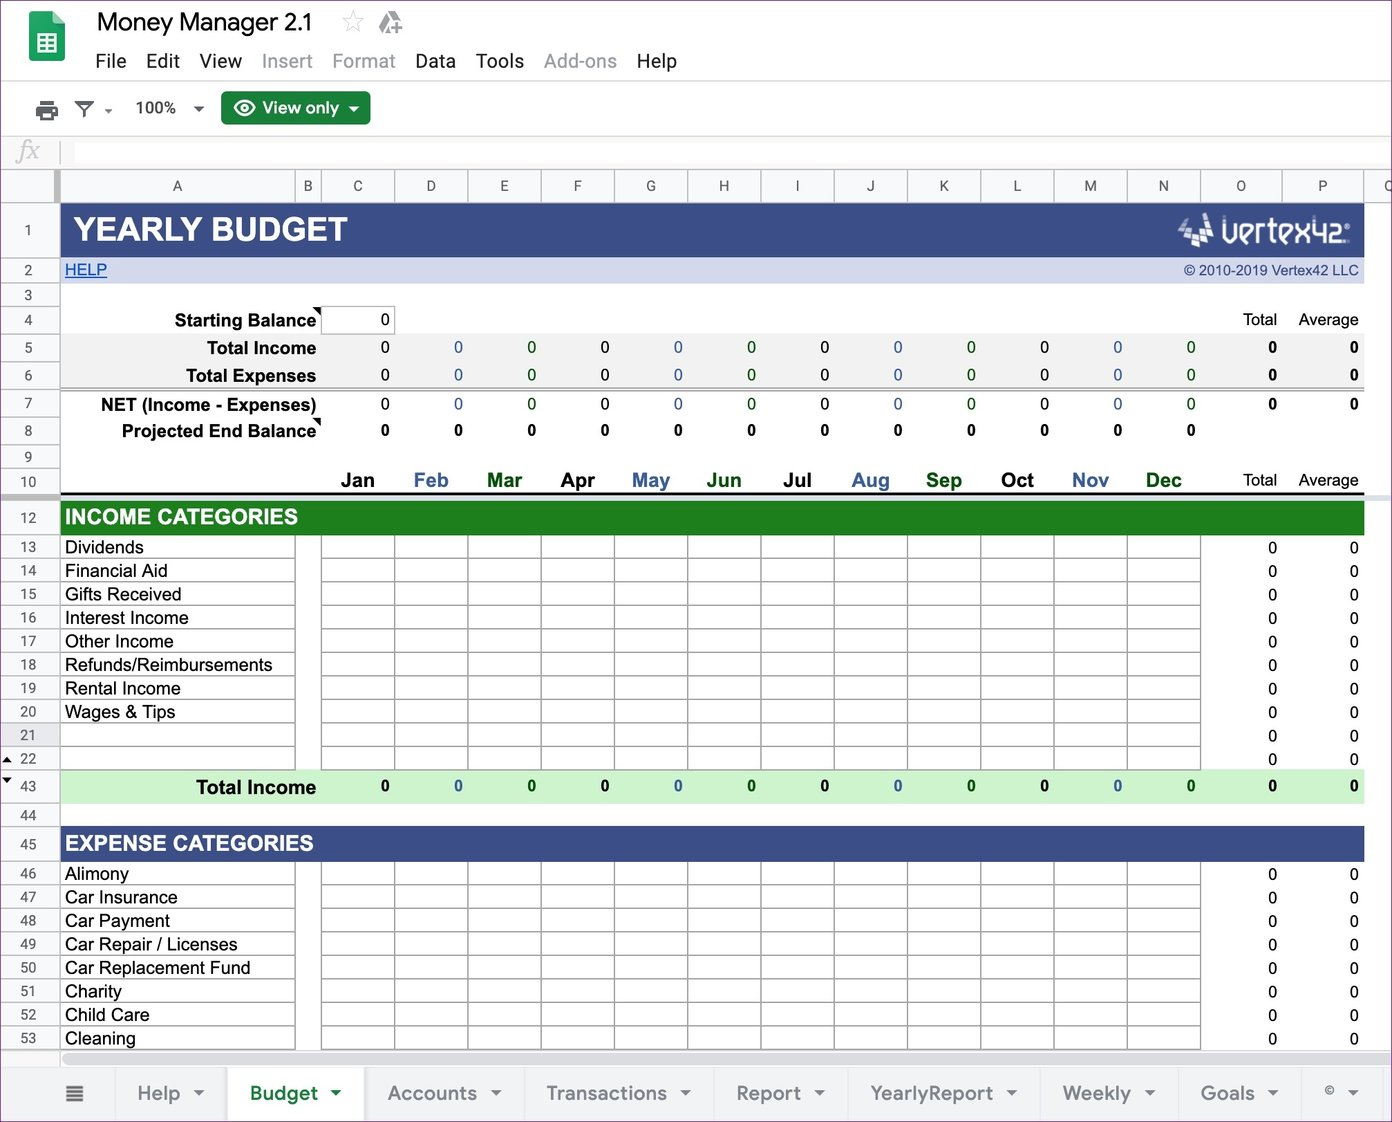 Full Size of Top Google Sheets Budget Templates For Finance Tracking Personal Money Manager Free Blank Spreadsheet